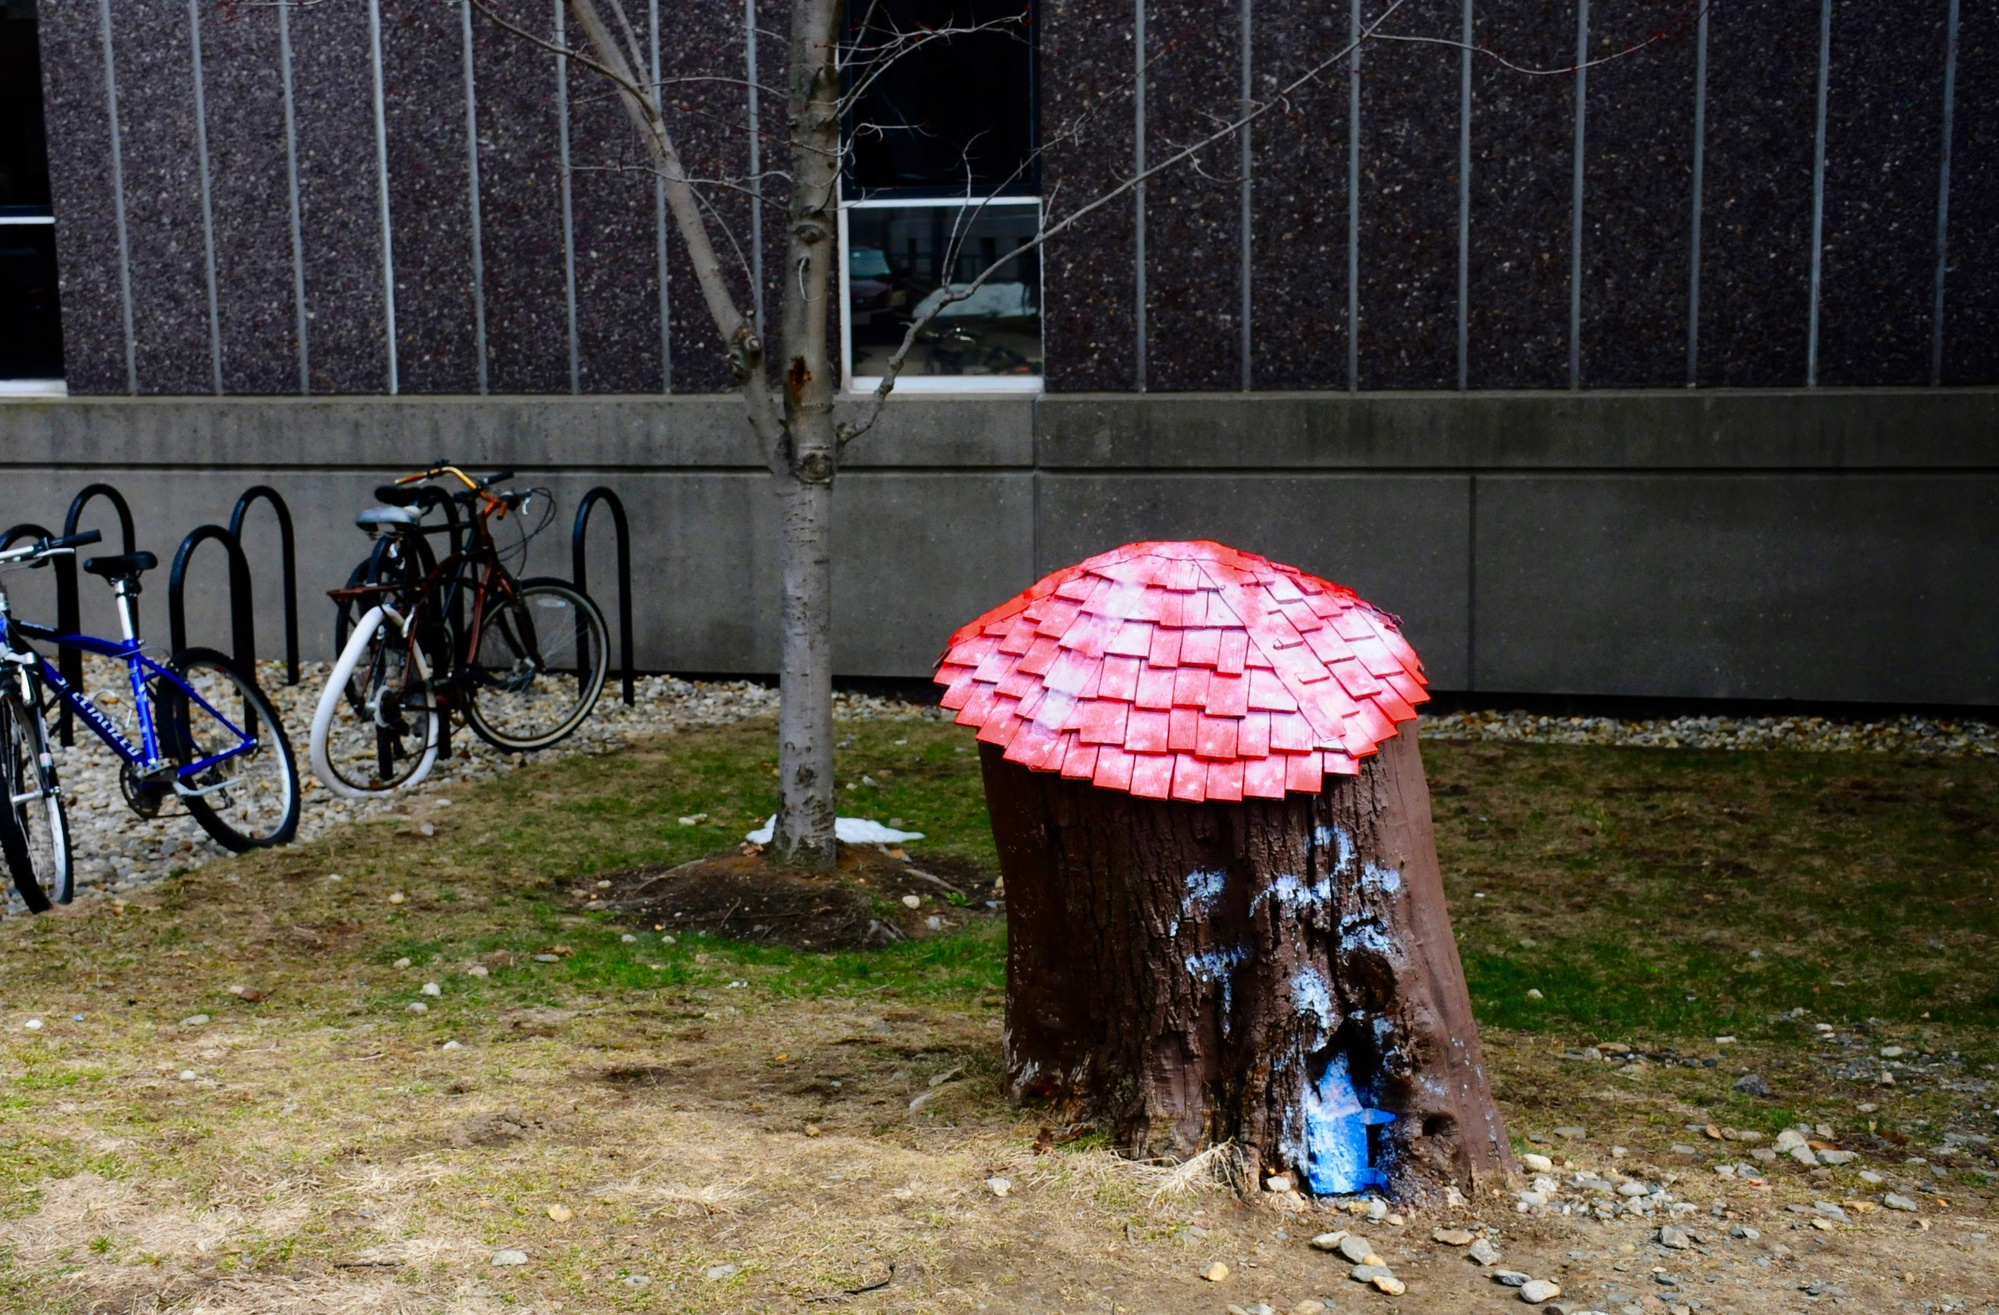 A small stump with a red shingle roof and battered blue door next to the Science Center are all that remain of Winnie the Pooh's homes in Cambridge.